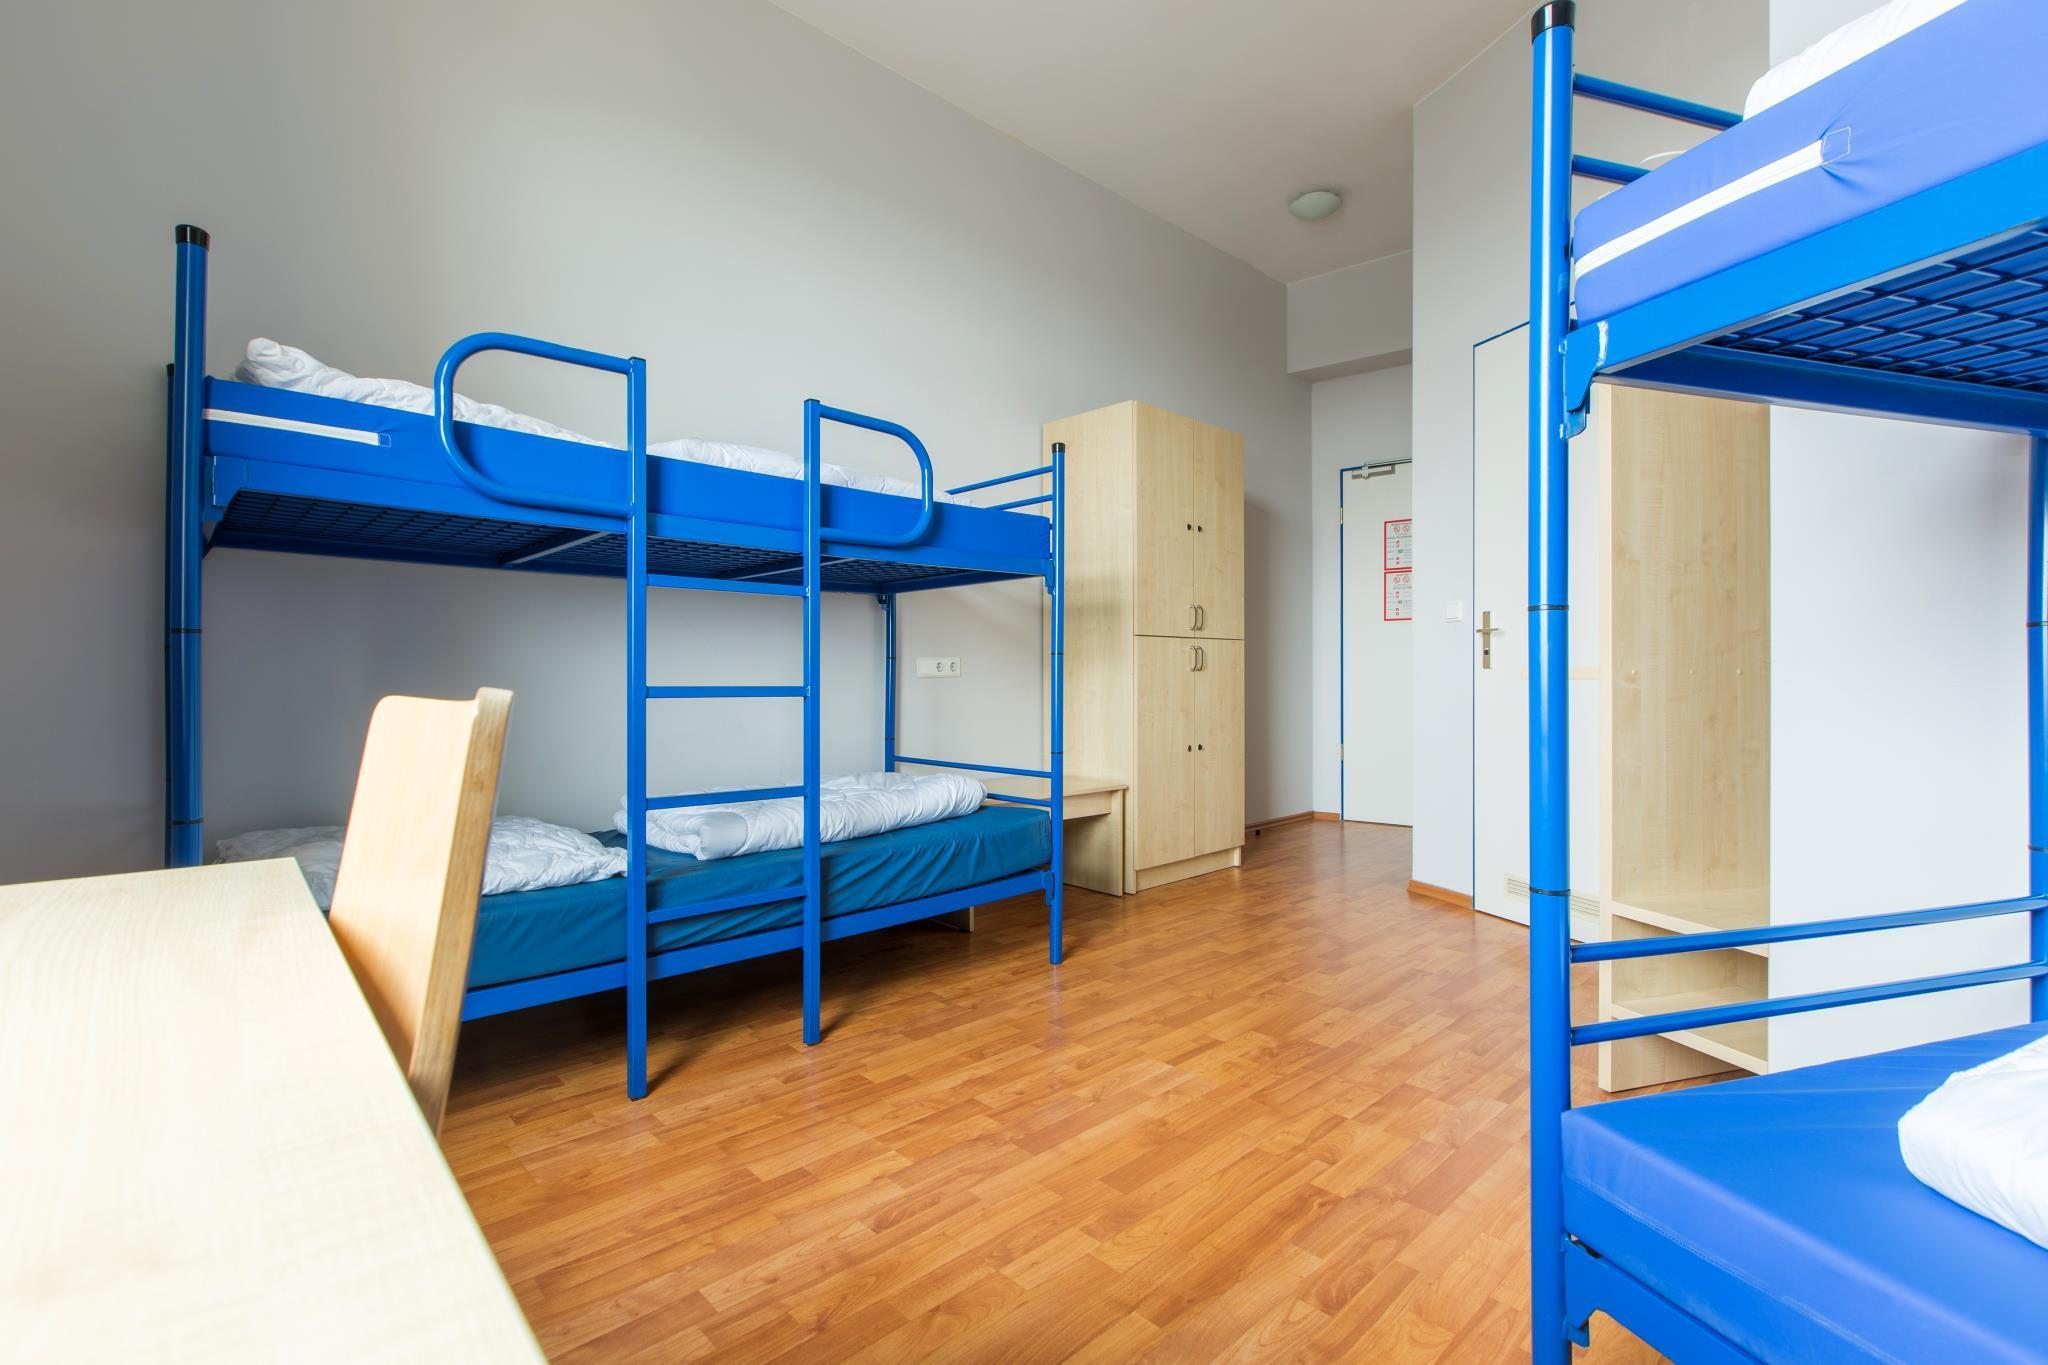 1 seng i 8-sengs sovesal (blandet) (1 Person in 8-Bed Dormitory - Mixed)